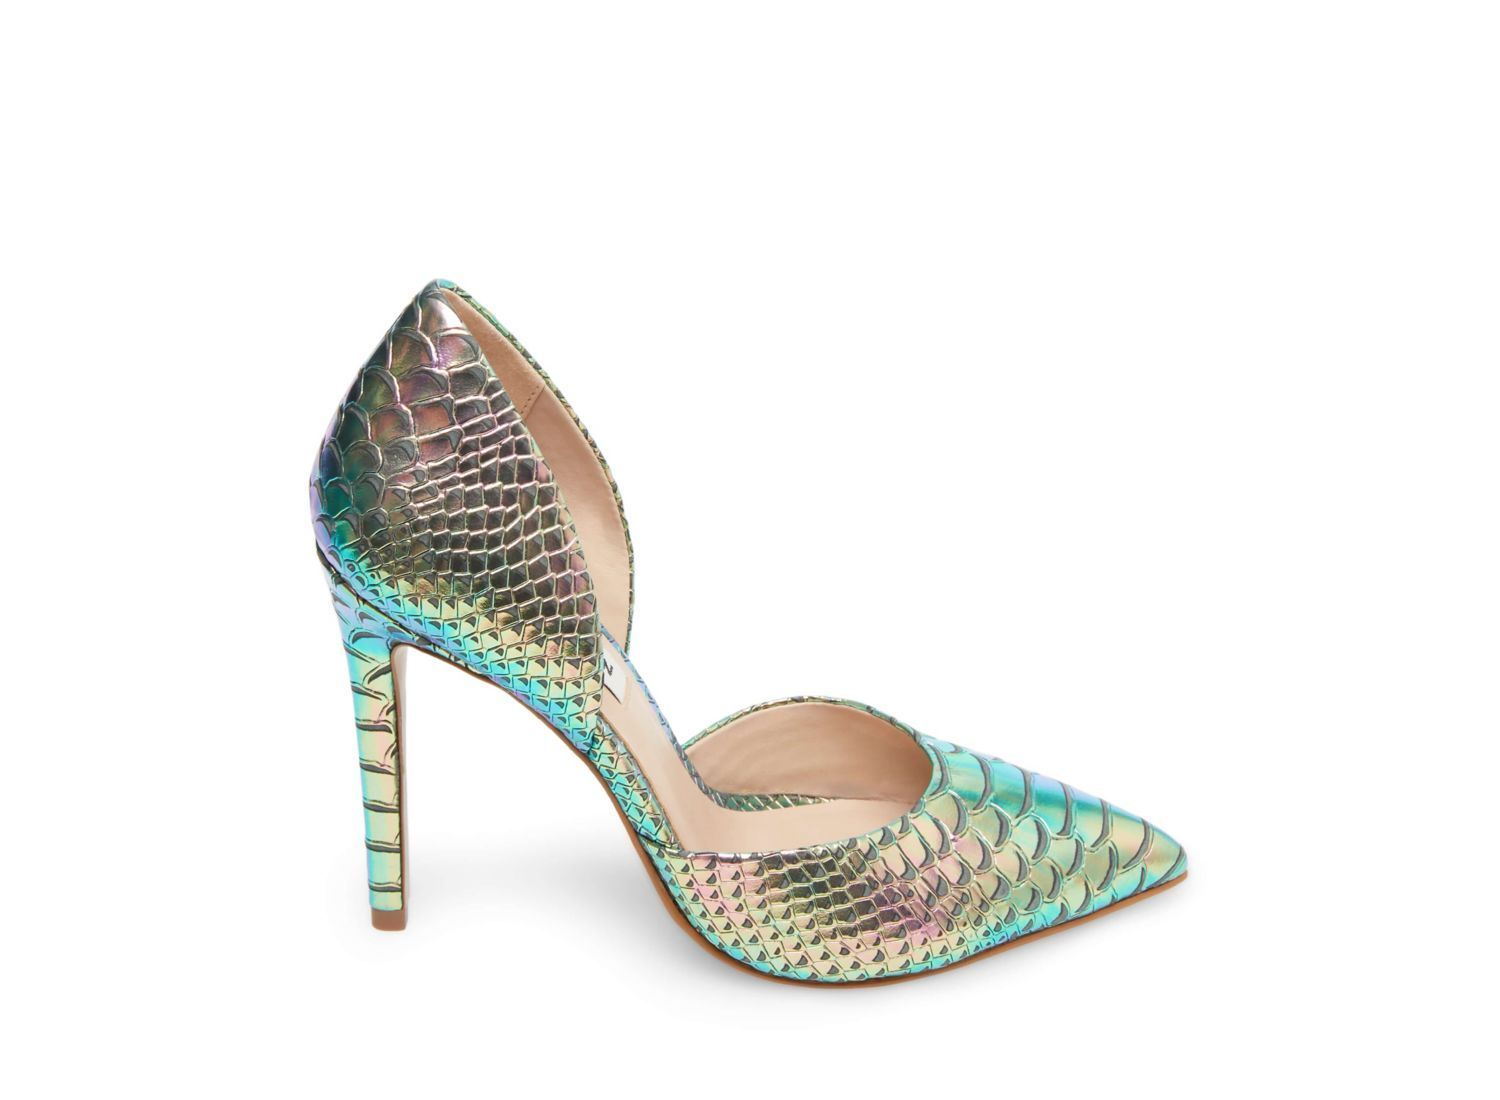 177a621ff6f 10 Best Prom Shoes 2019 - Trendy Shoes